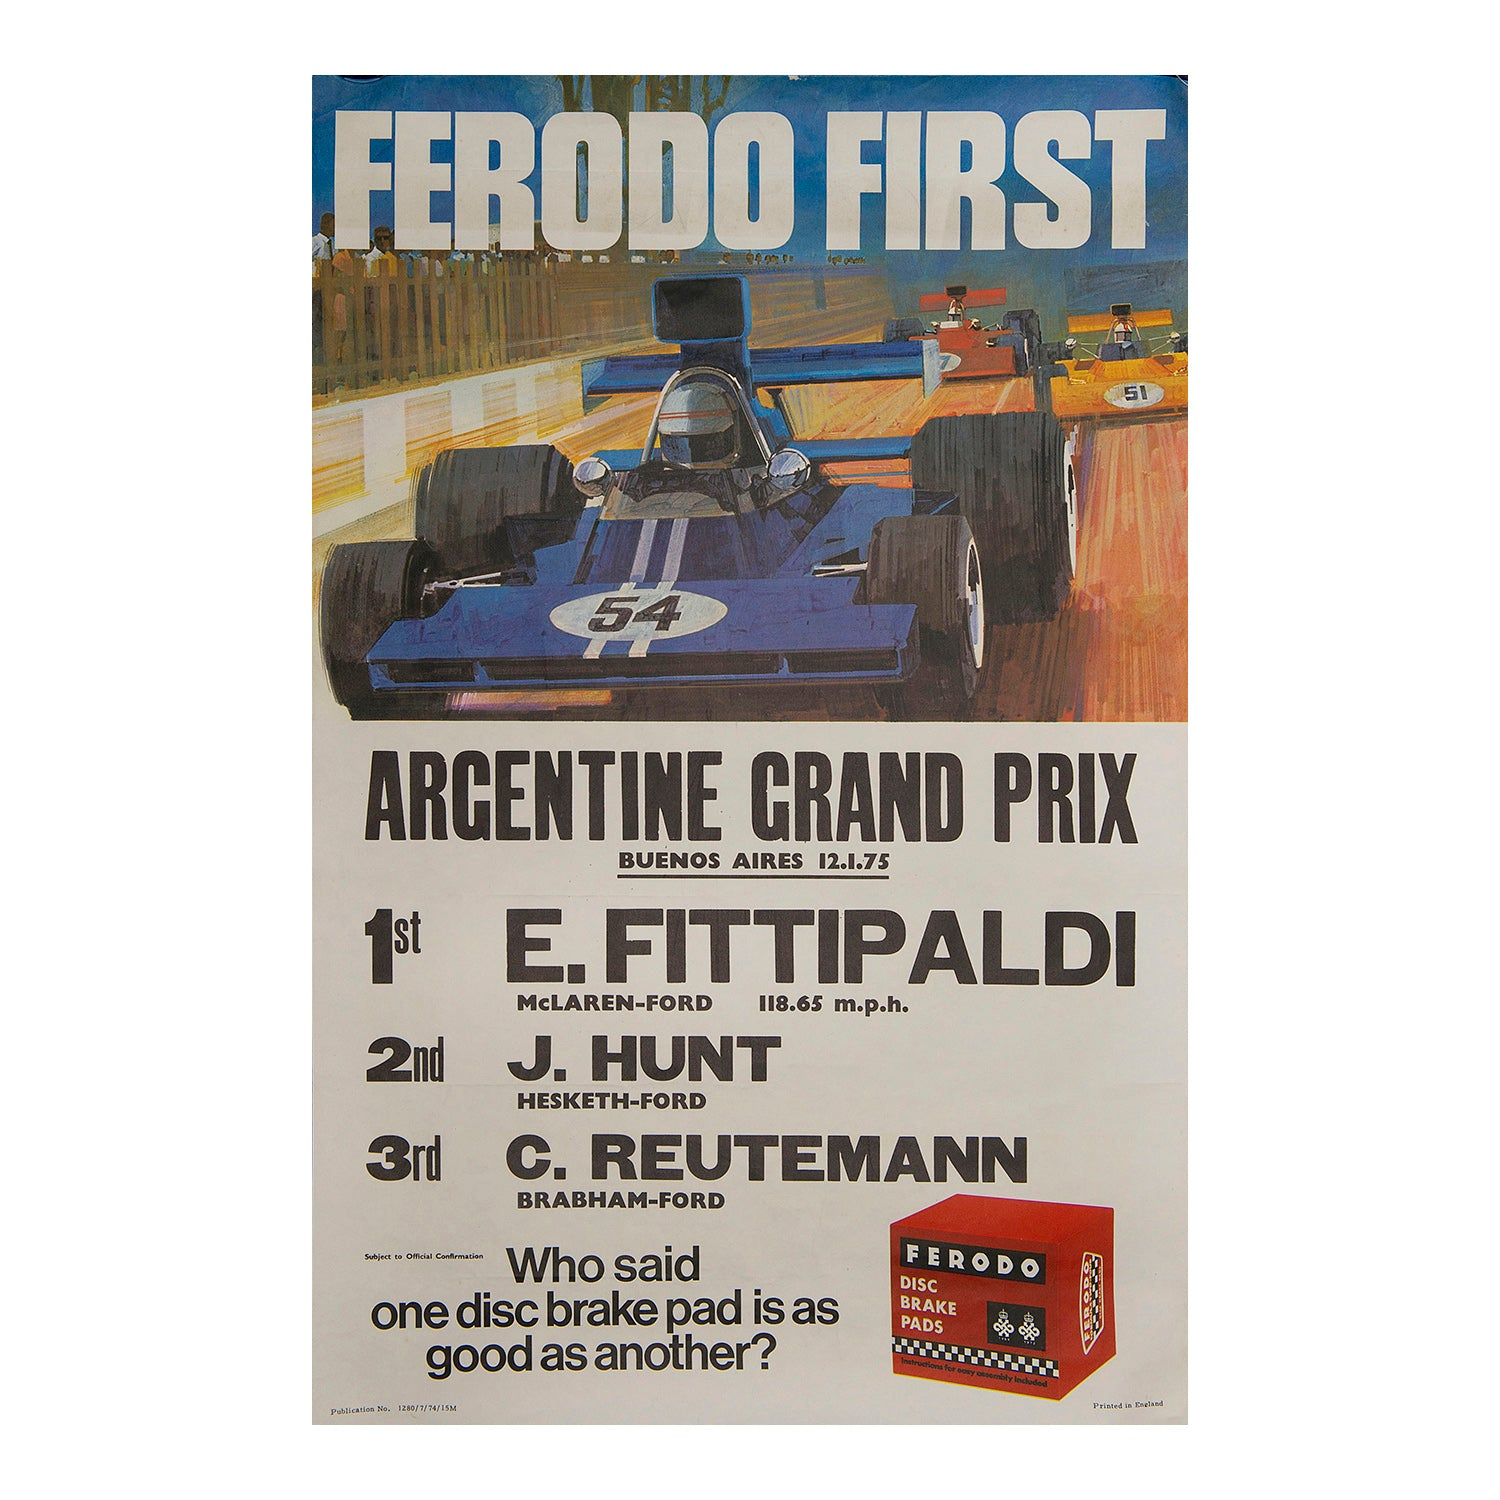 Ferodo First. Argentine Grand Prix, 1975